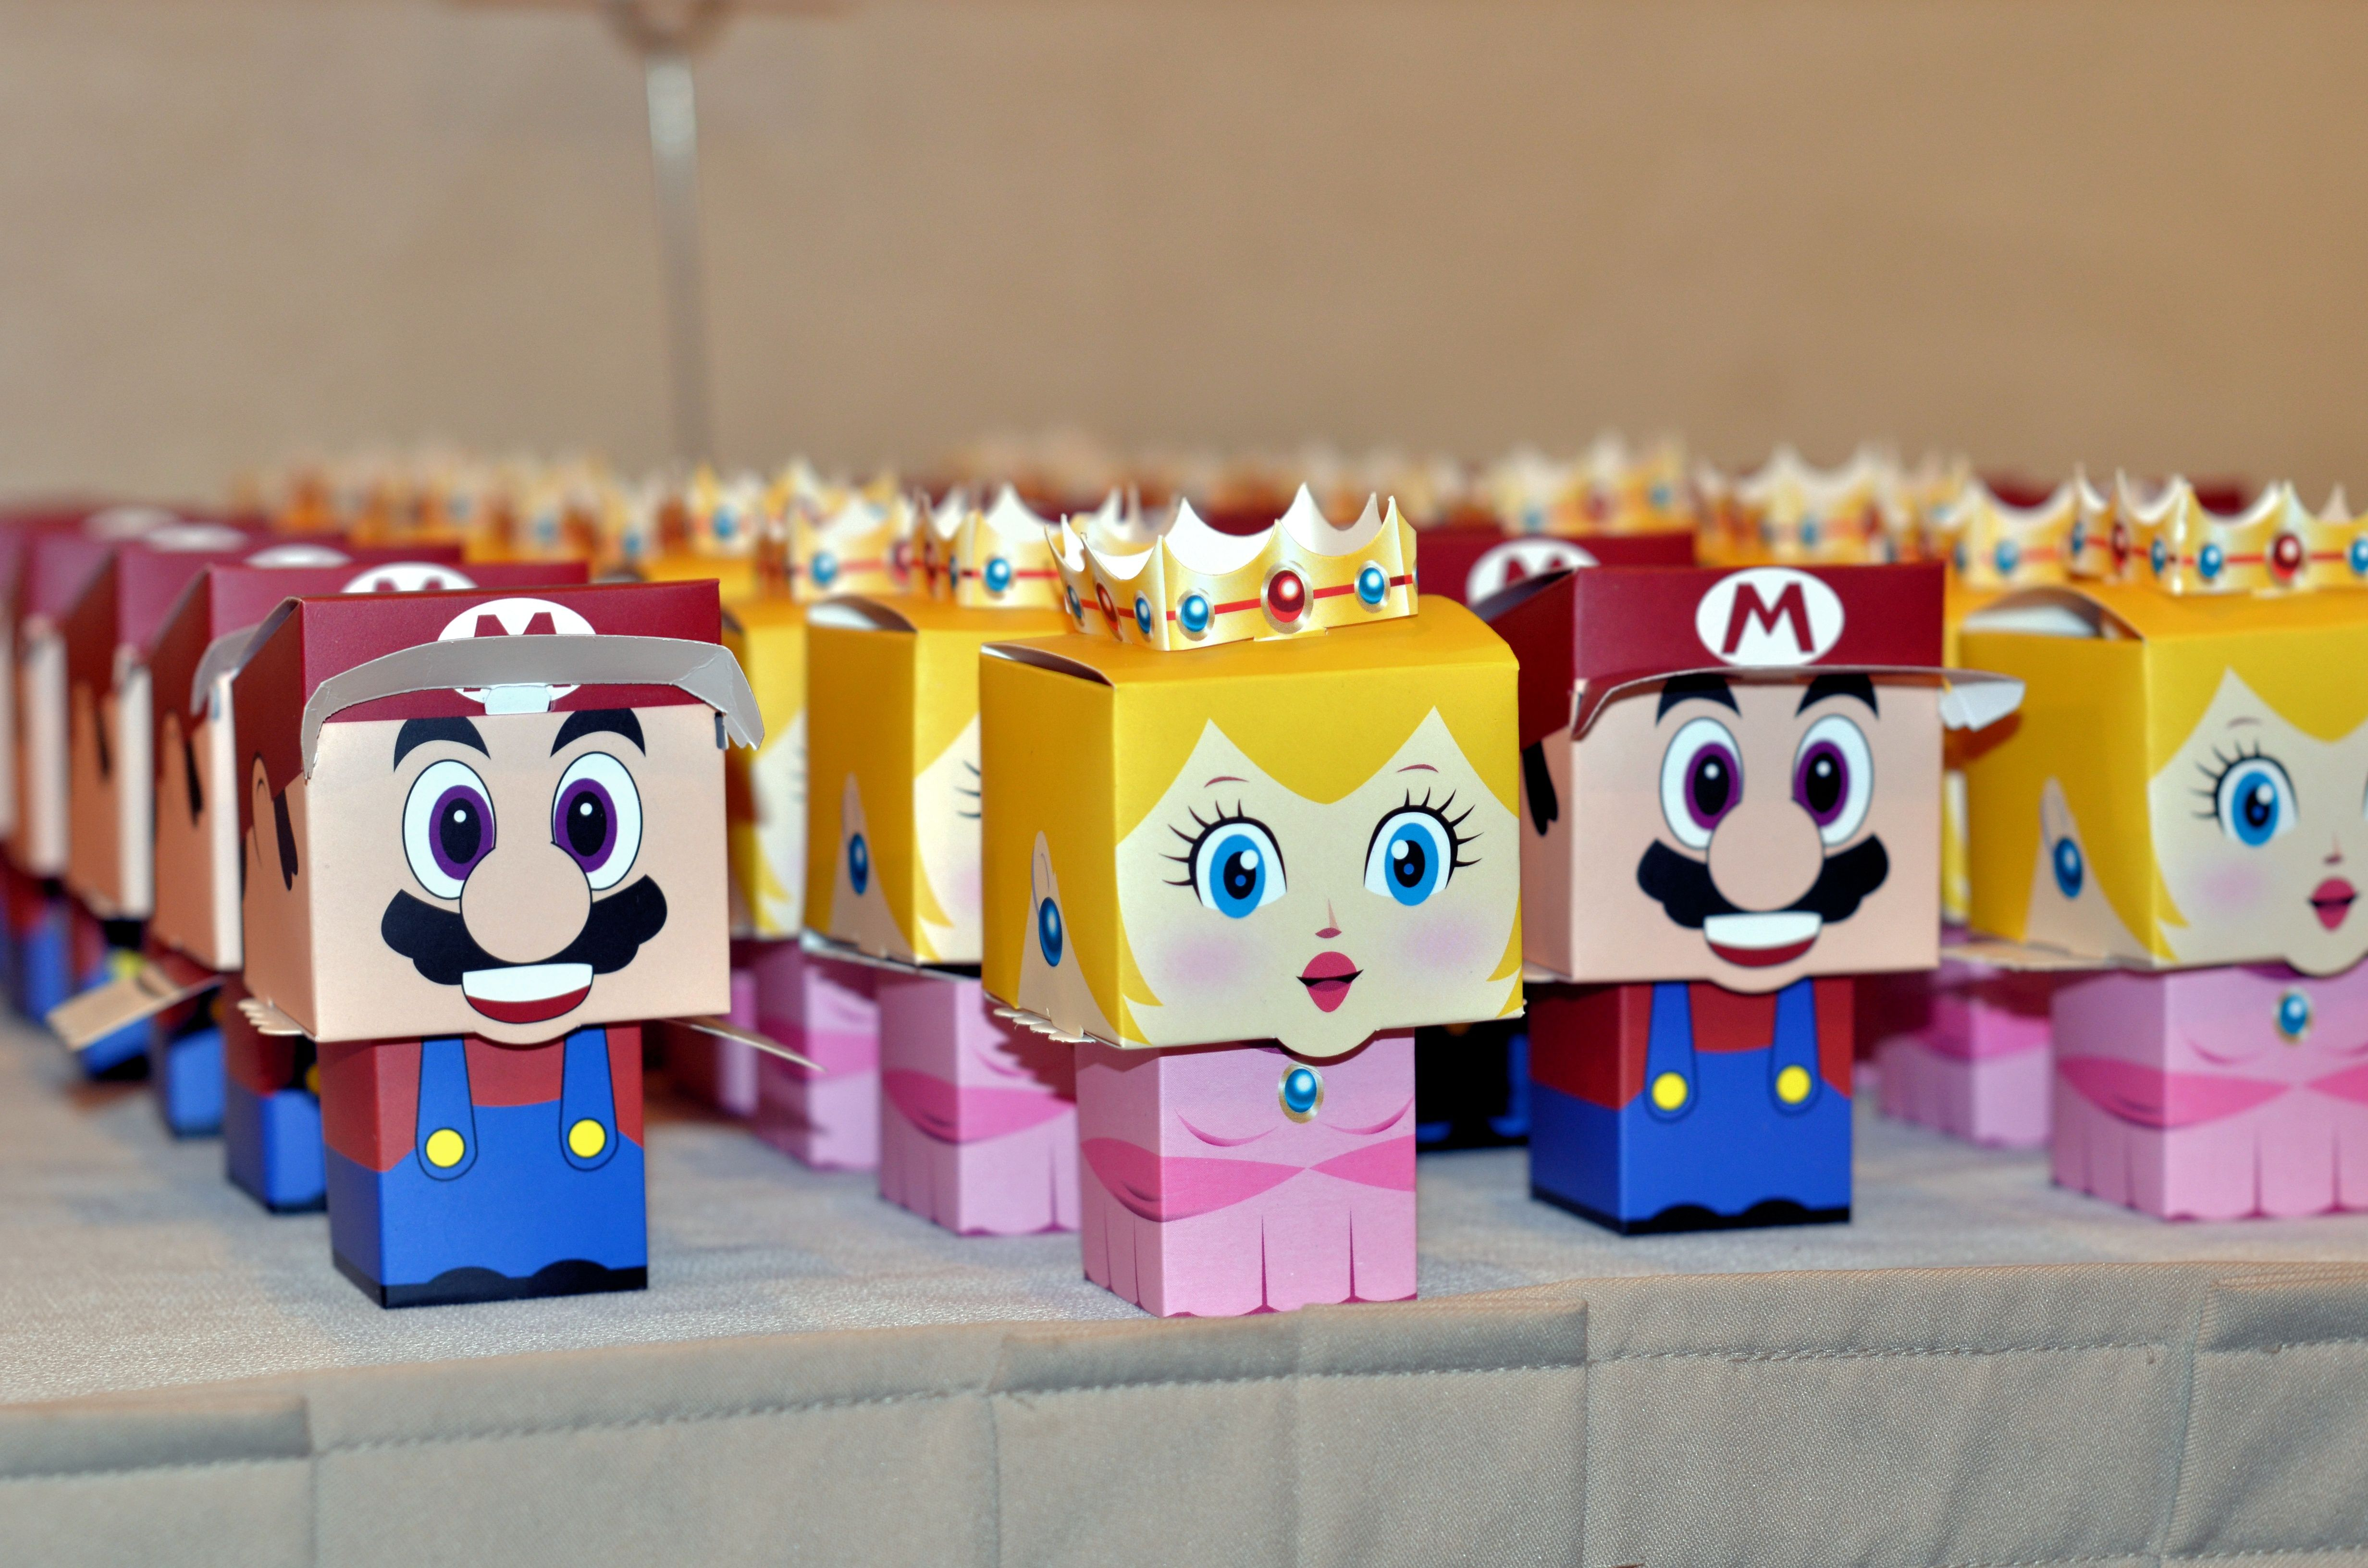 We made lego shaped chocolates and included custom dice inside the Mario and Princess favor boxes